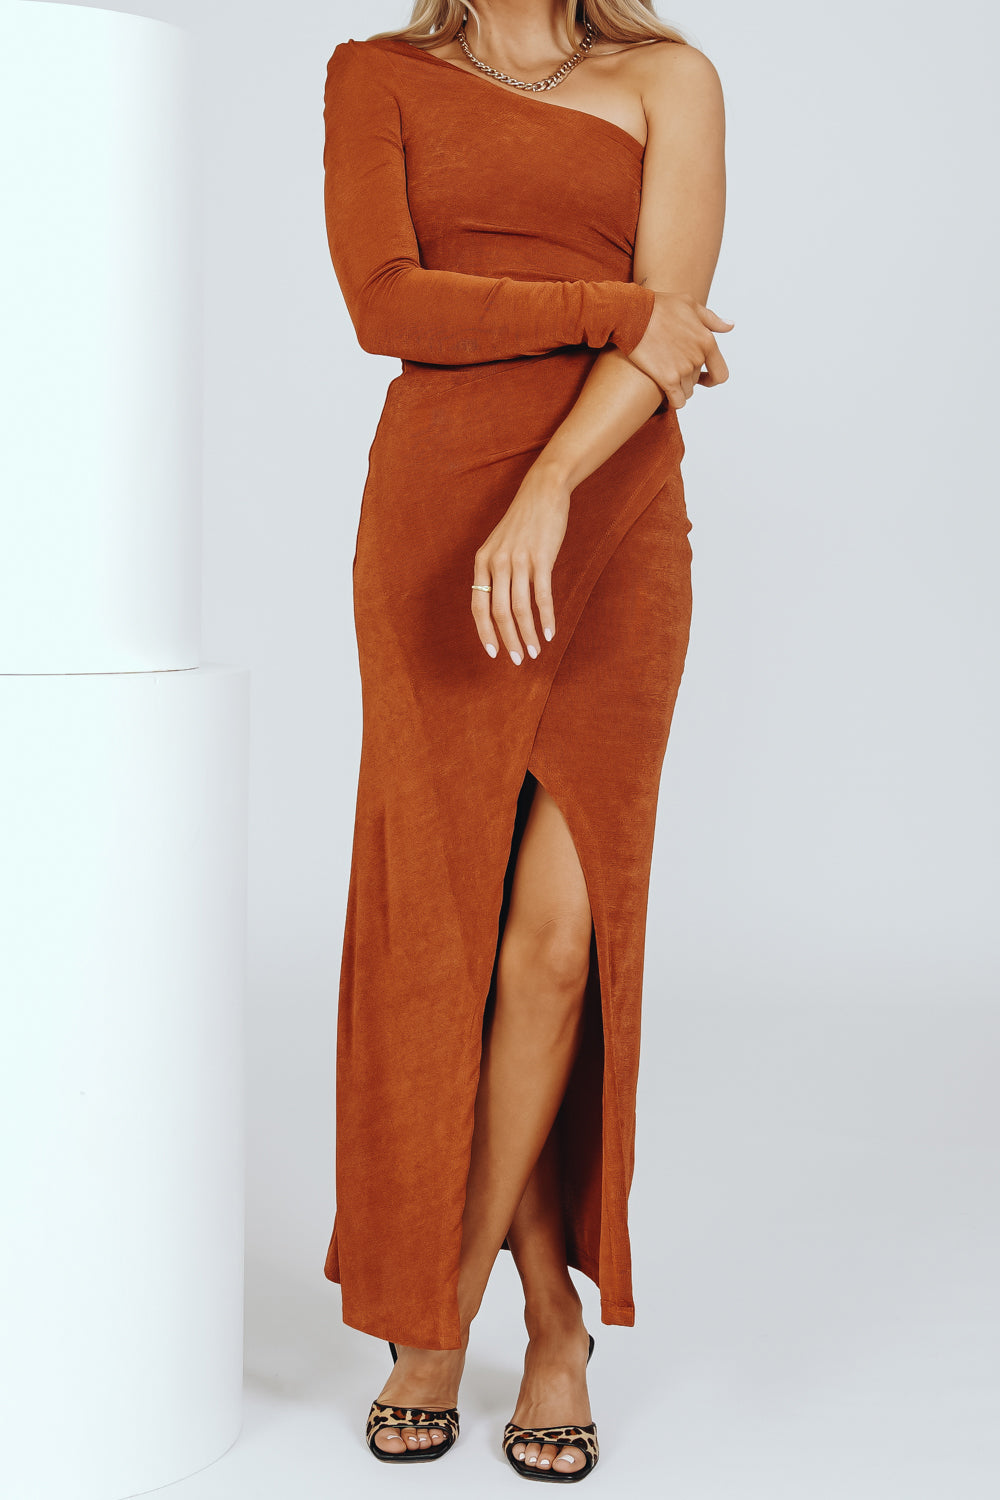 After Hours One-Shoulder Midi Dress // Rust